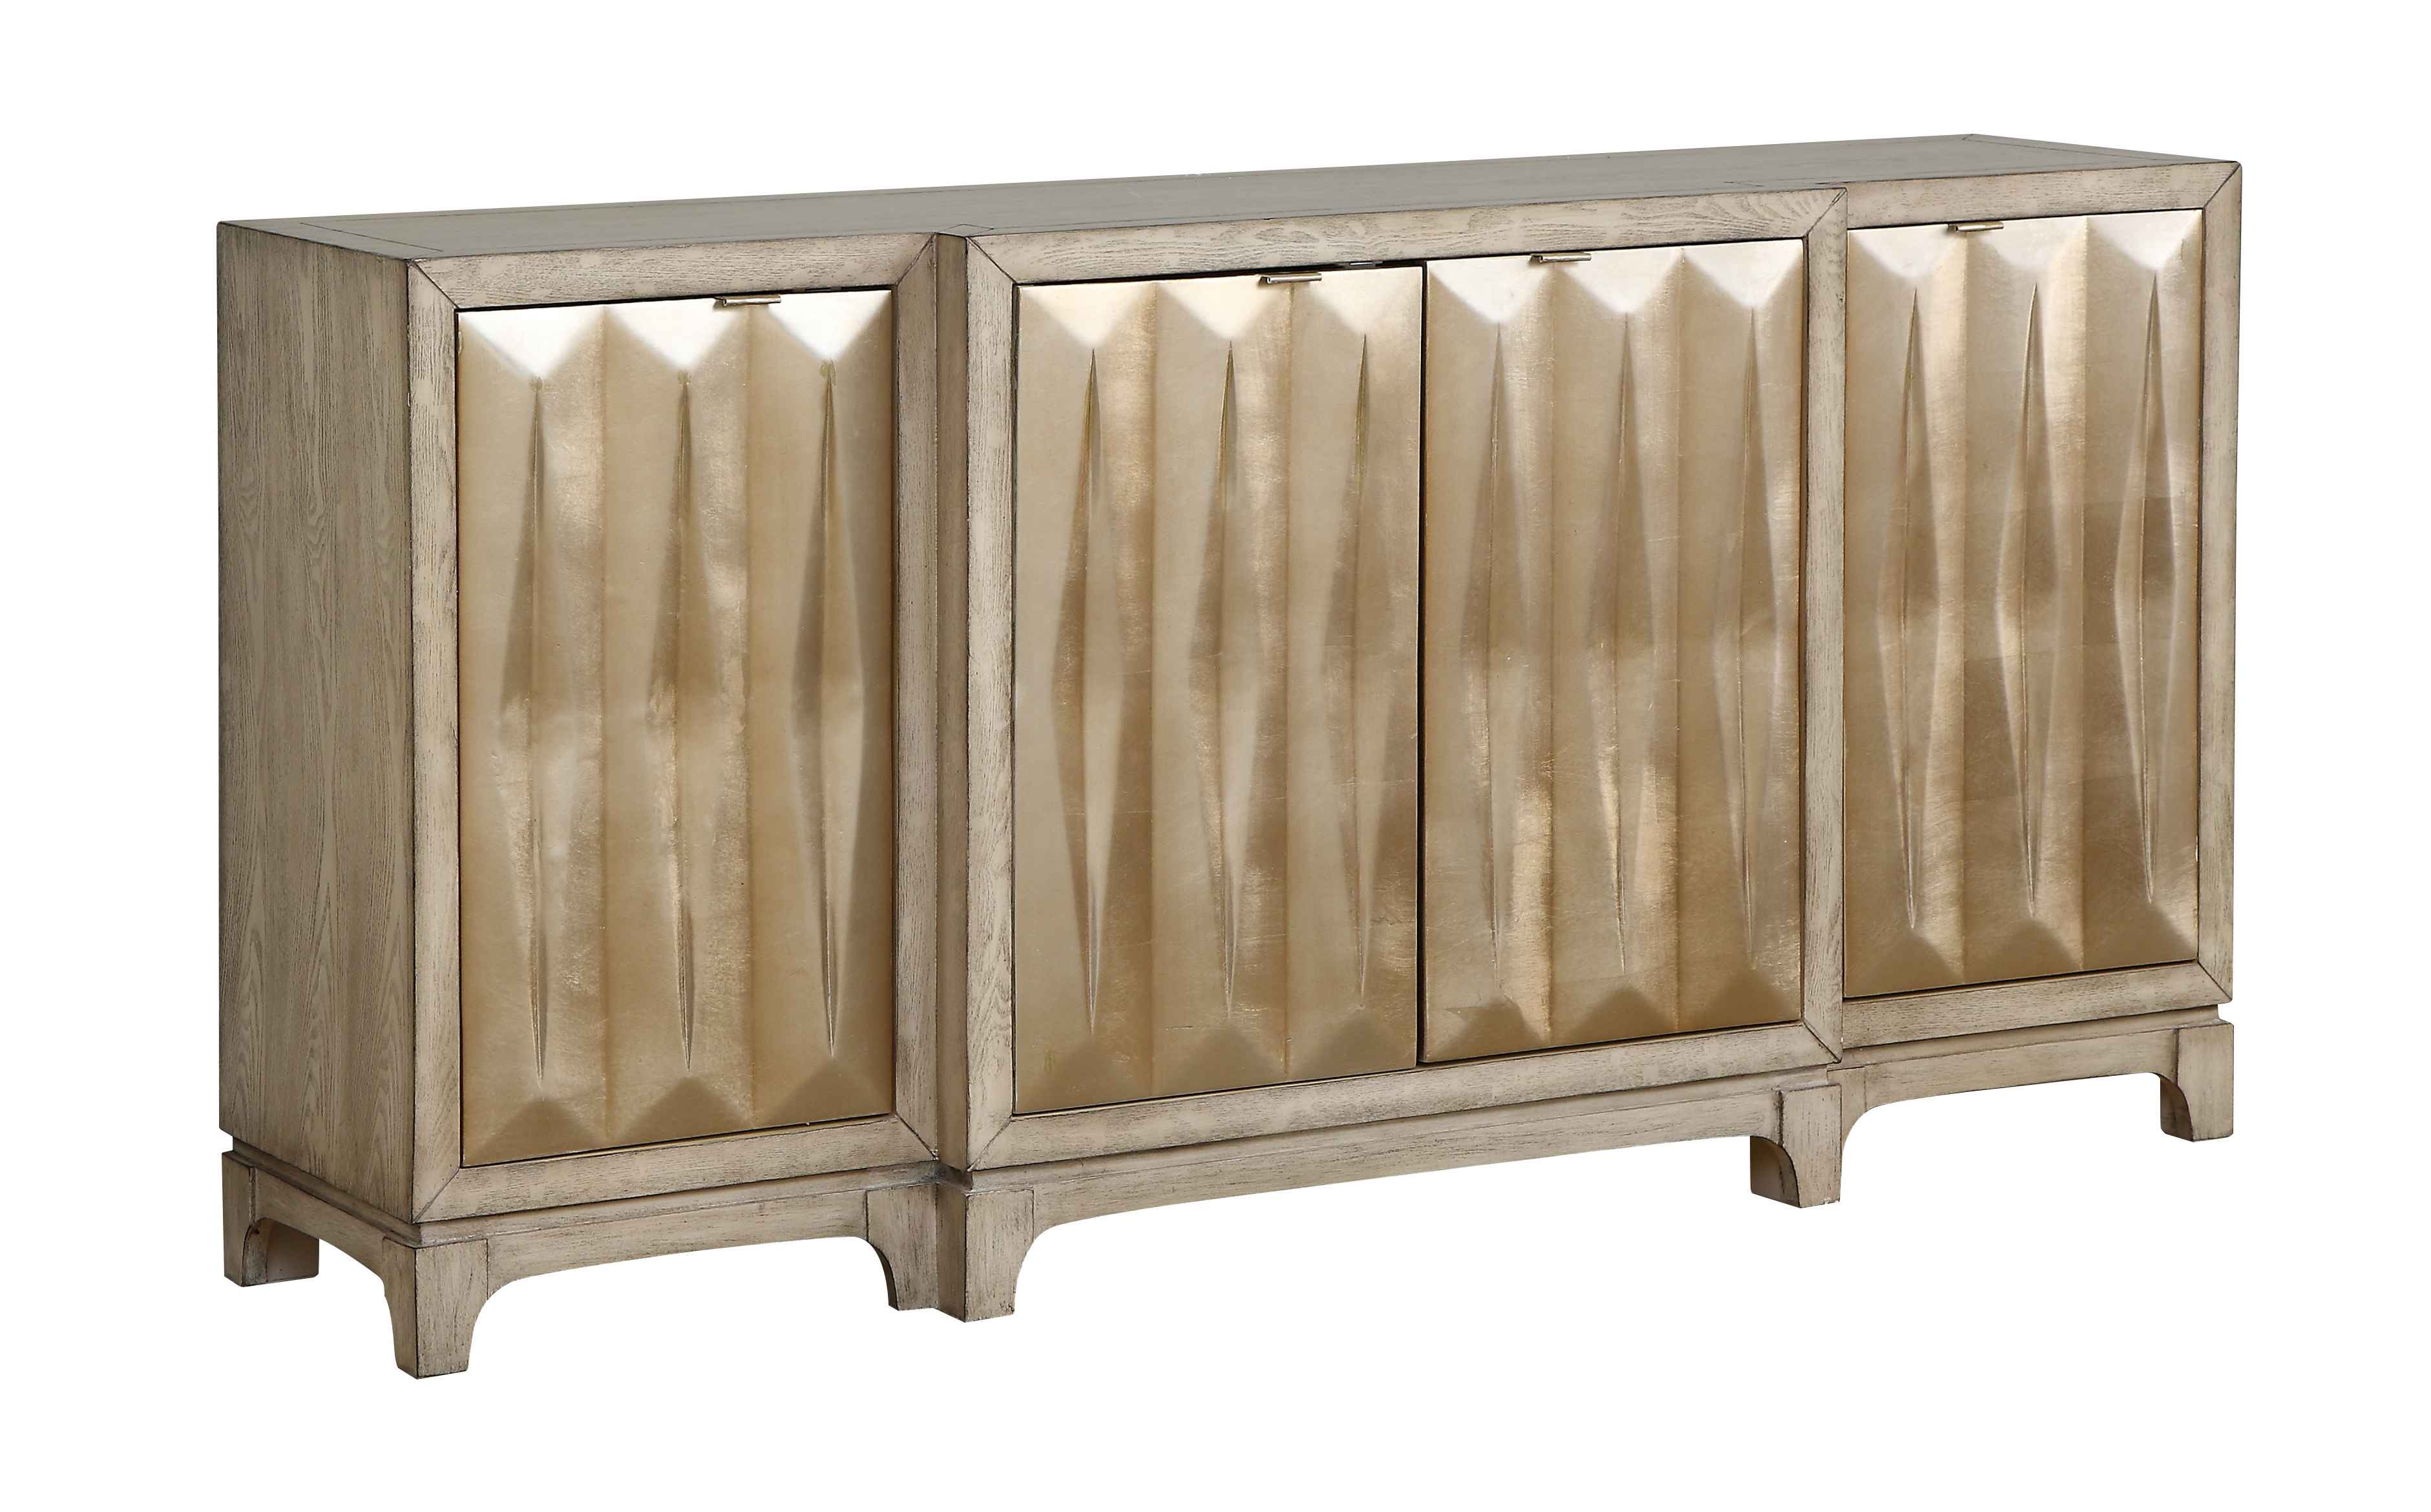 Gold Sideboards & Buffets   Joss & Main For Armelle Sideboards (Gallery 5 of 20)